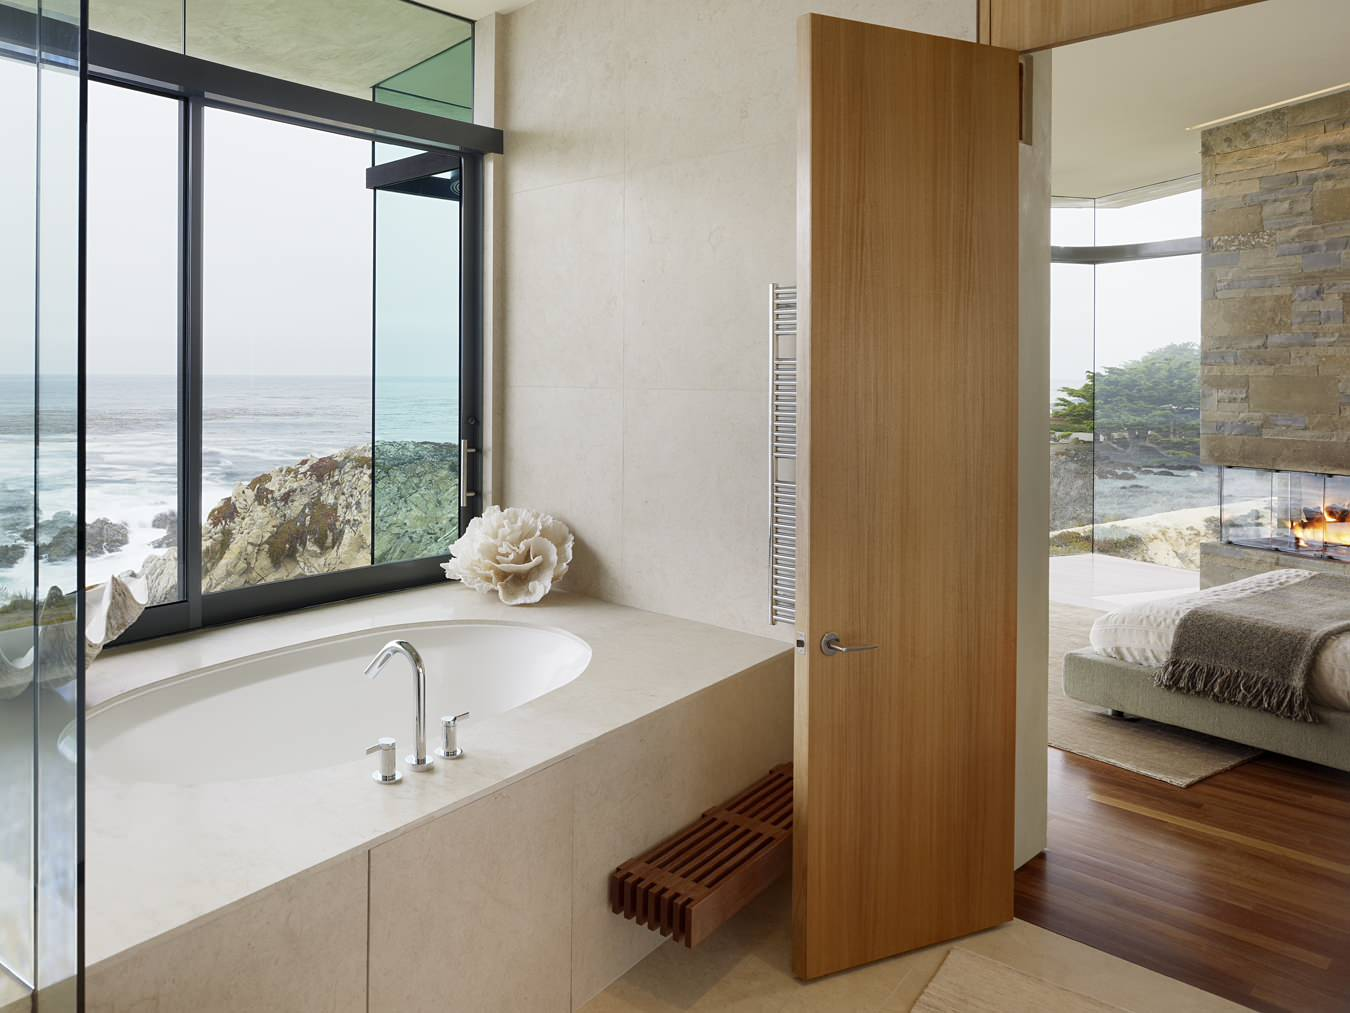 Inspiring Home Interior Using Modern Interior Doors: Master Bedroom Plus Contemporary Bathroom With Modern Interior Doors Plus Ocean View And Surround Bathtub Also Mount Faucet With Large Windows And Tile Flooring Also Walk In Shower Ideas